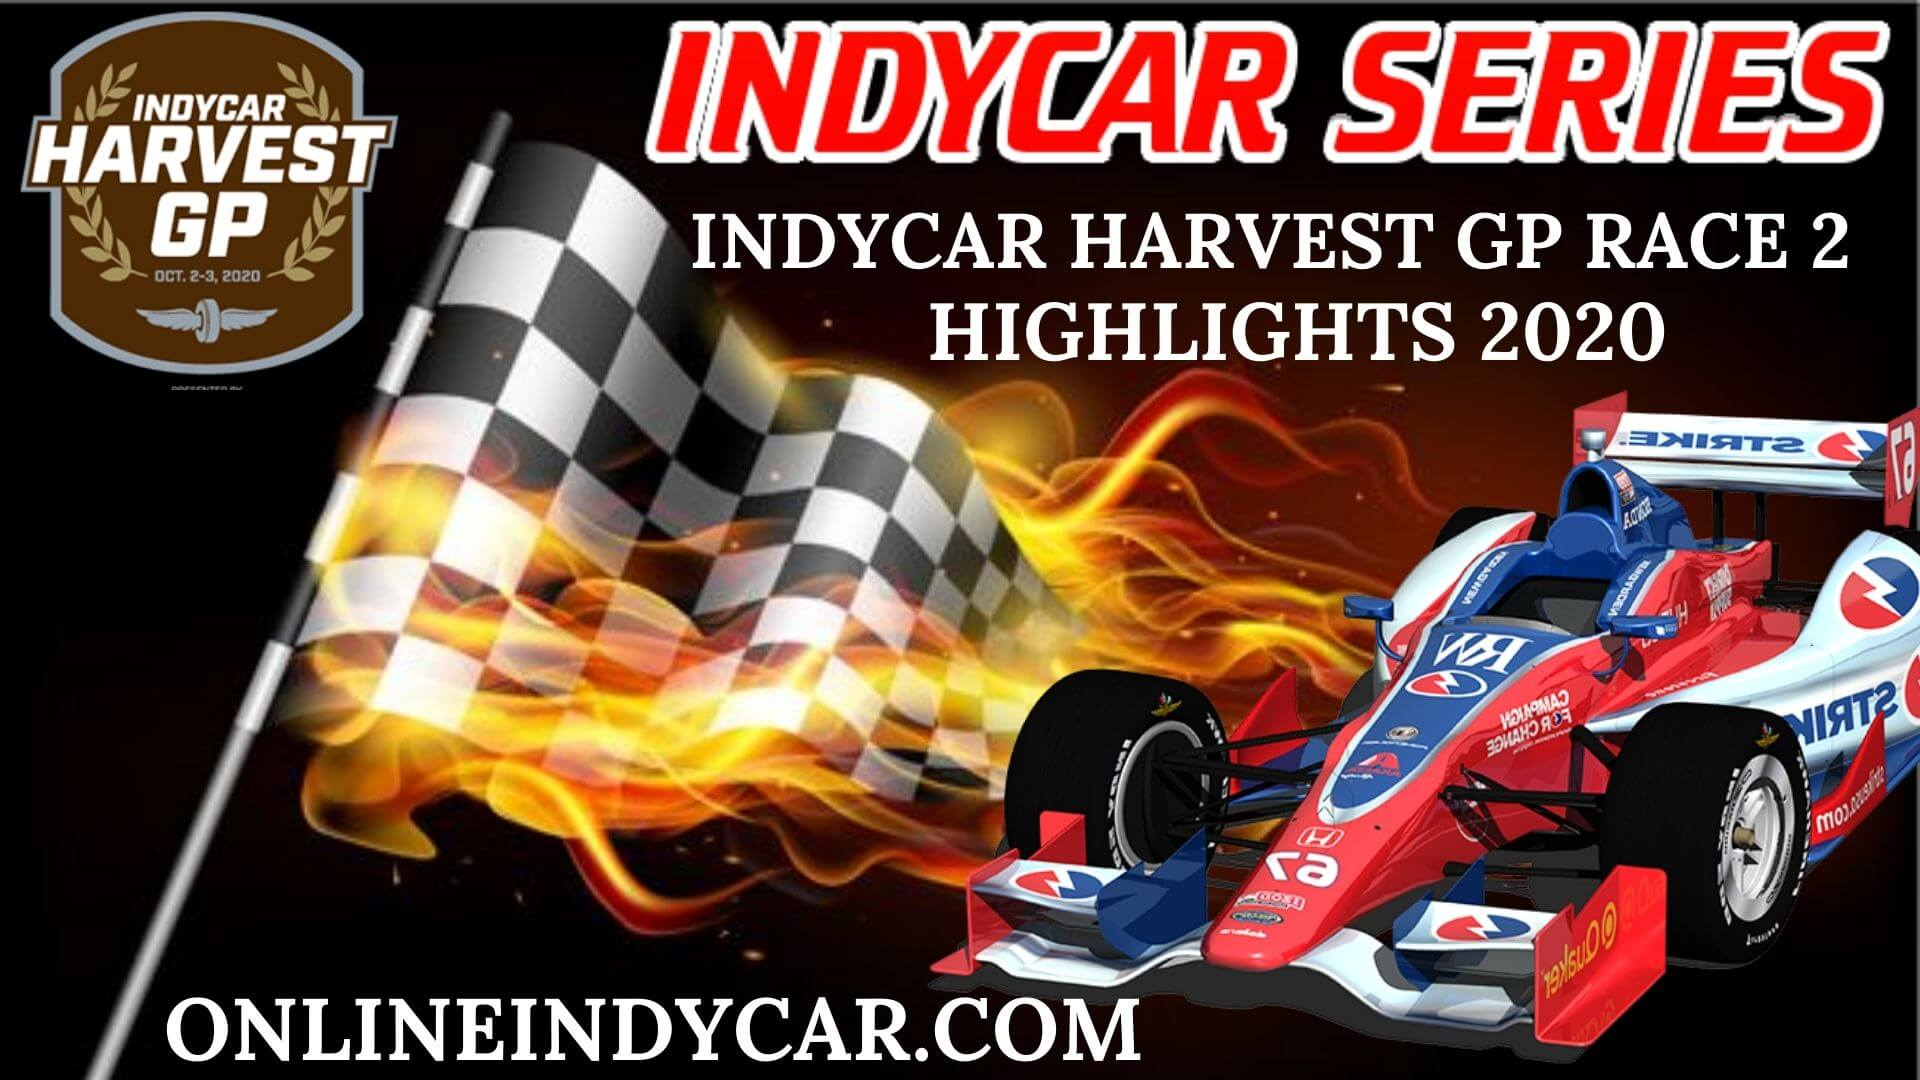 INDYCAR Harvest GP Race 2 Highlights 2020